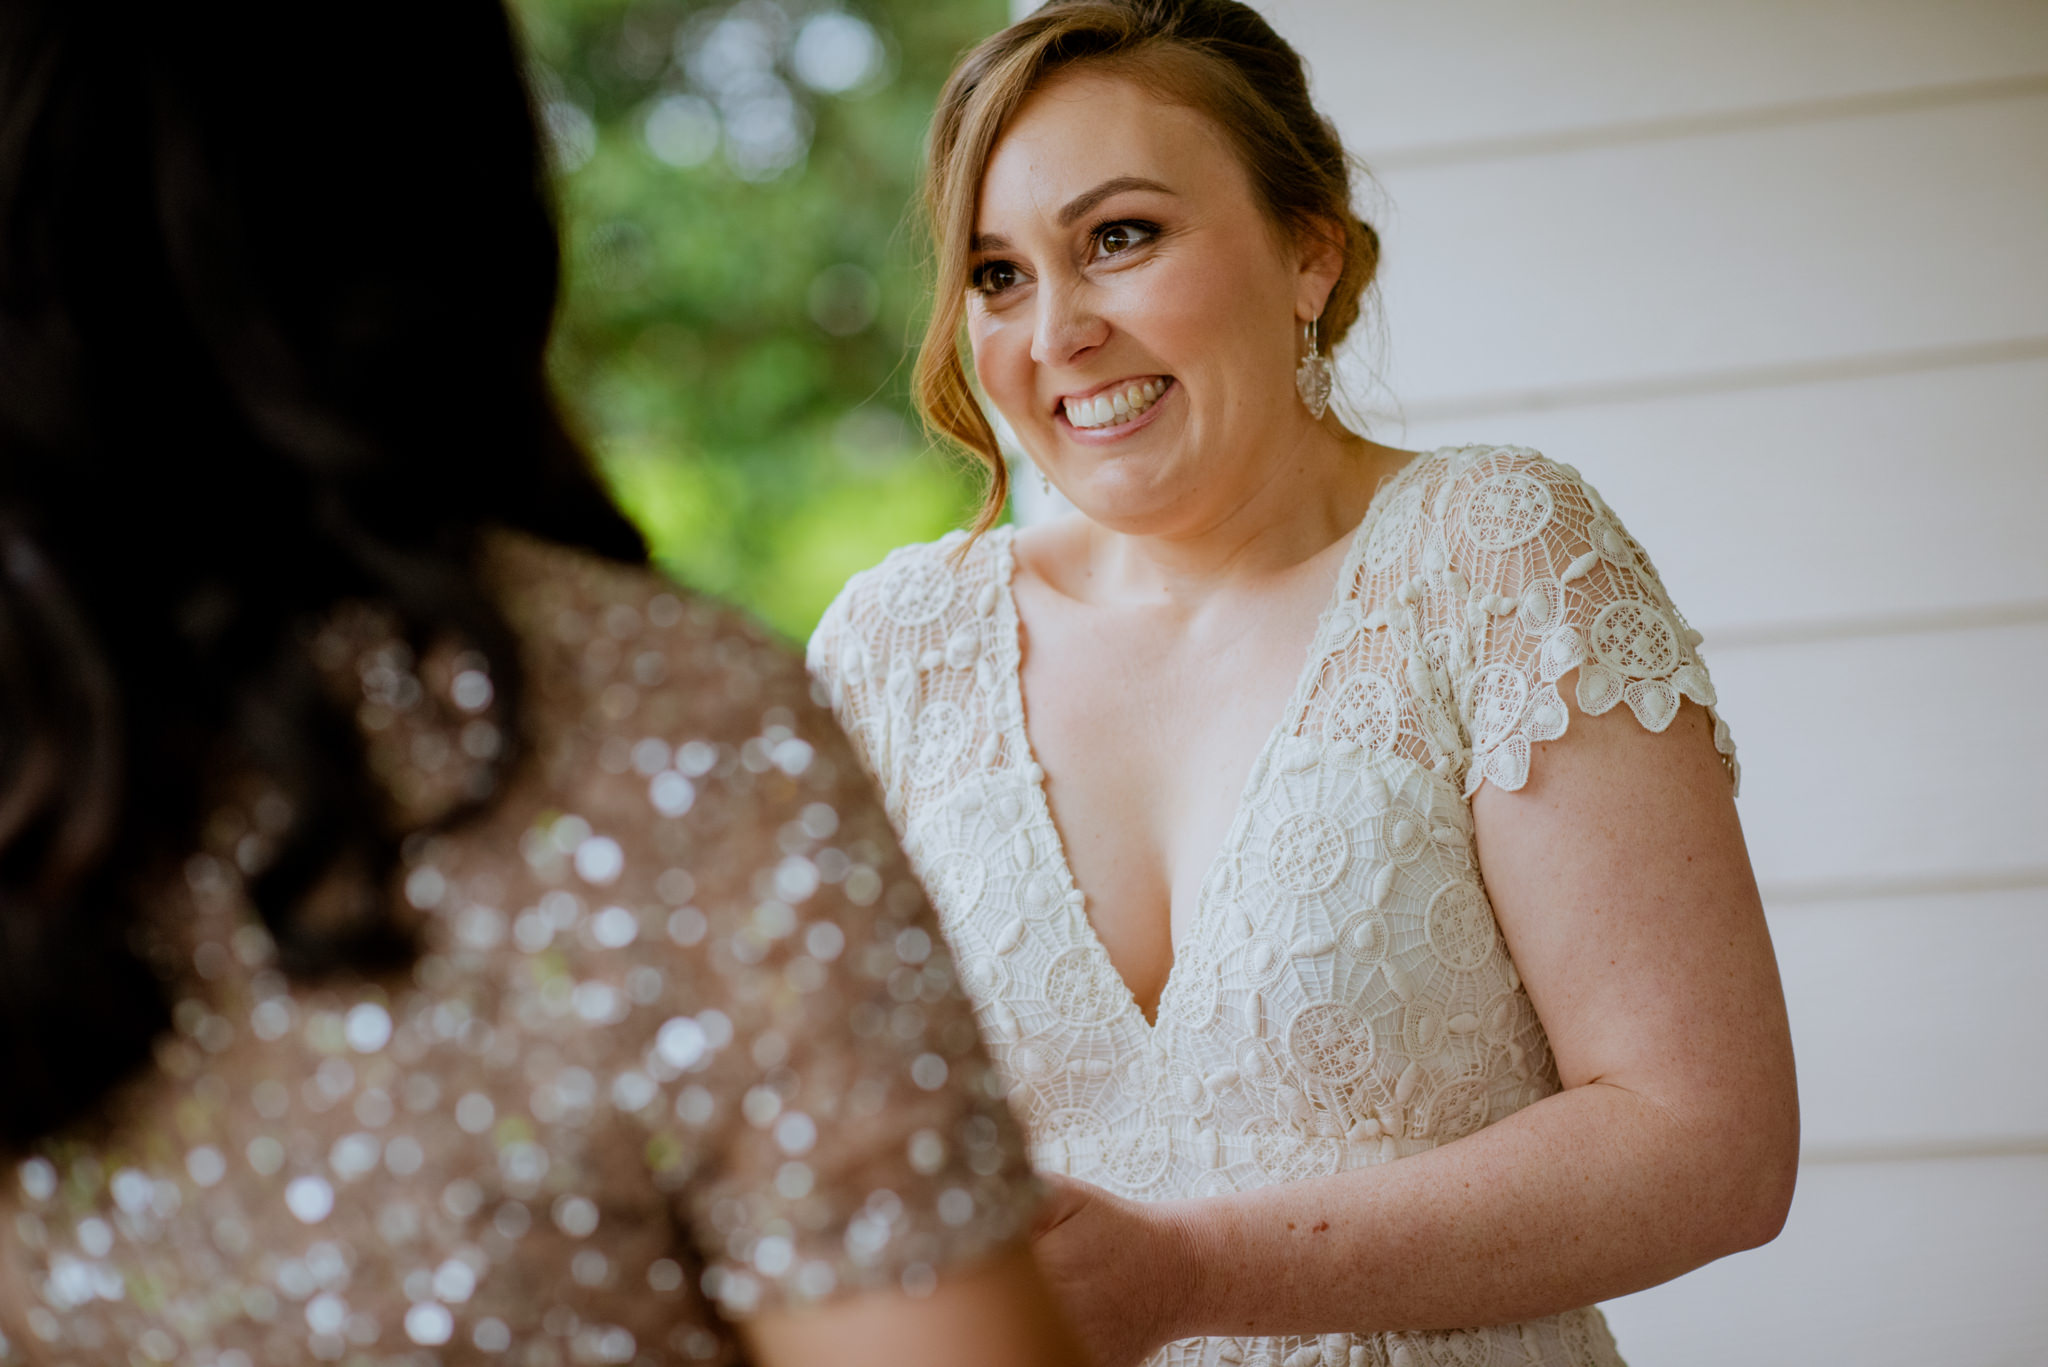 Nervous looking bride puts ring on her partner